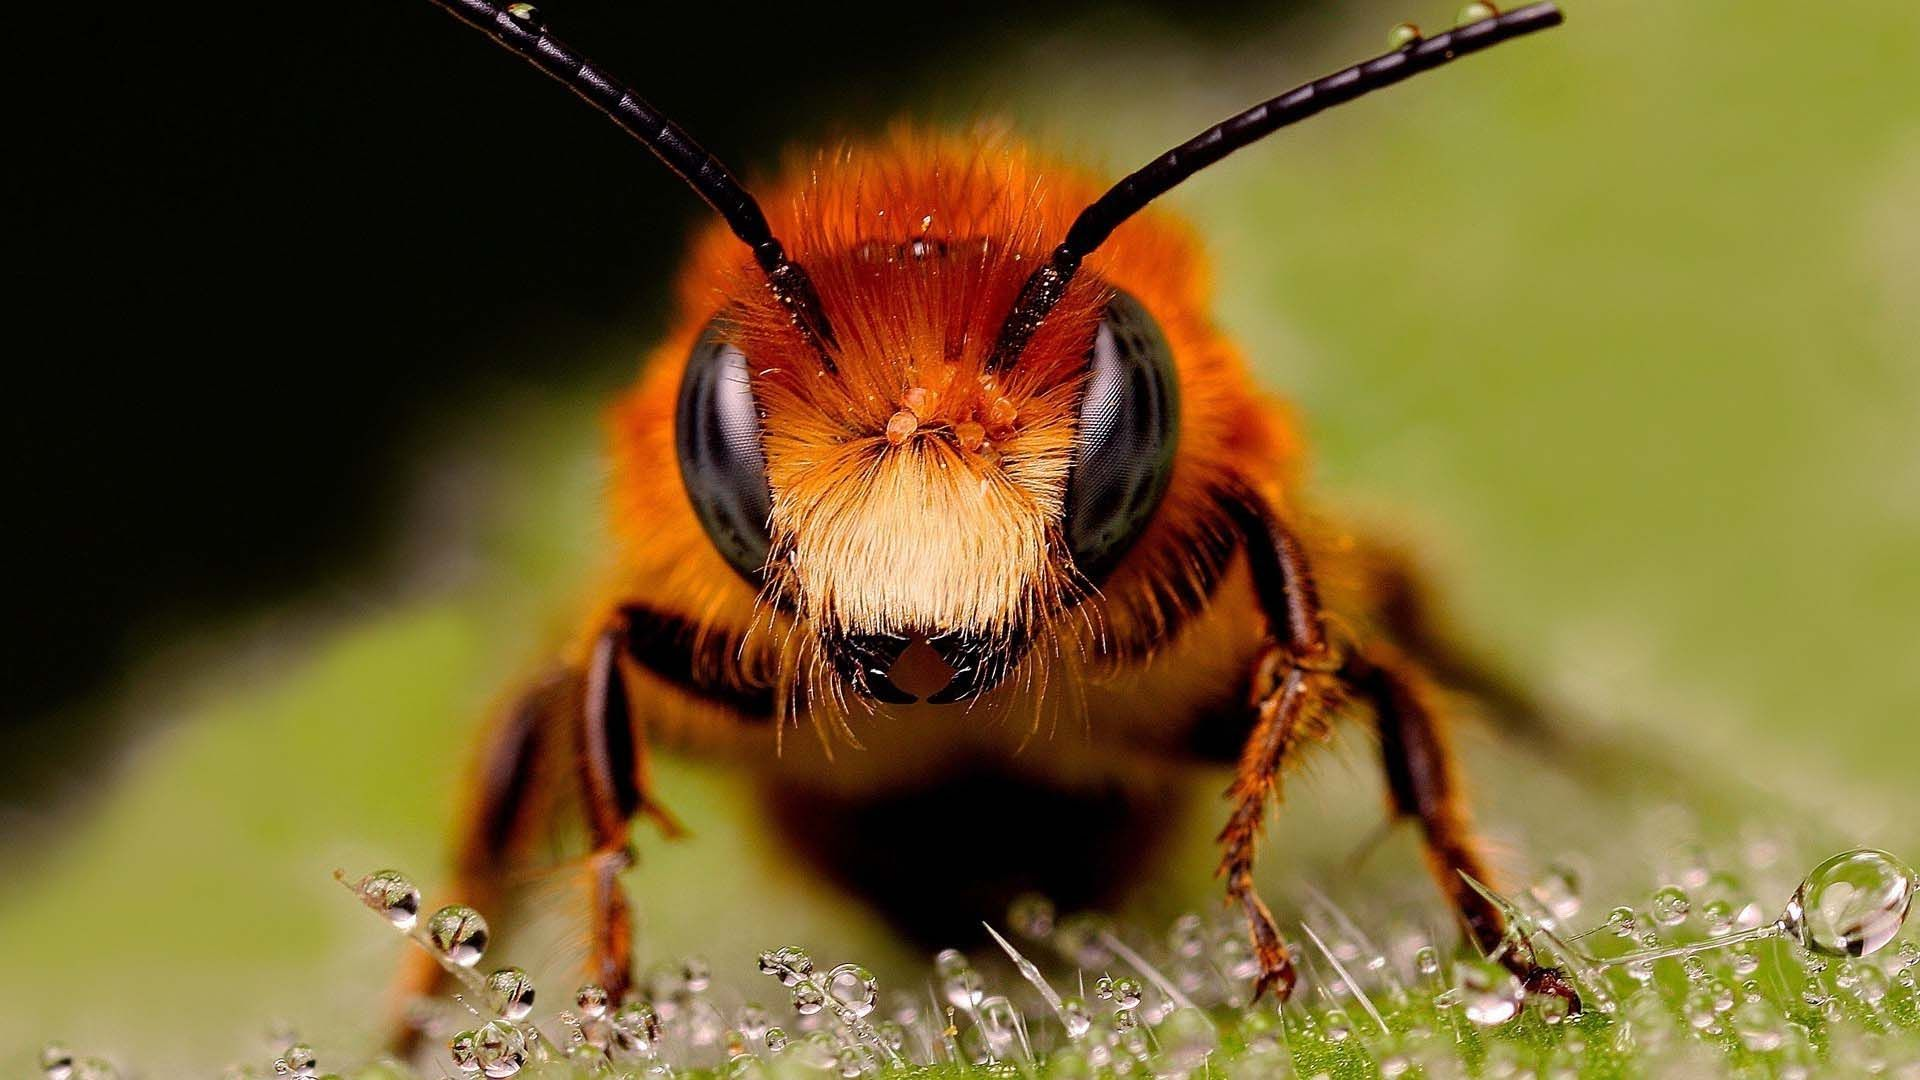 Bee Closeup HD | HD Animals and Birds Wallpapers for Mobile and Desktop